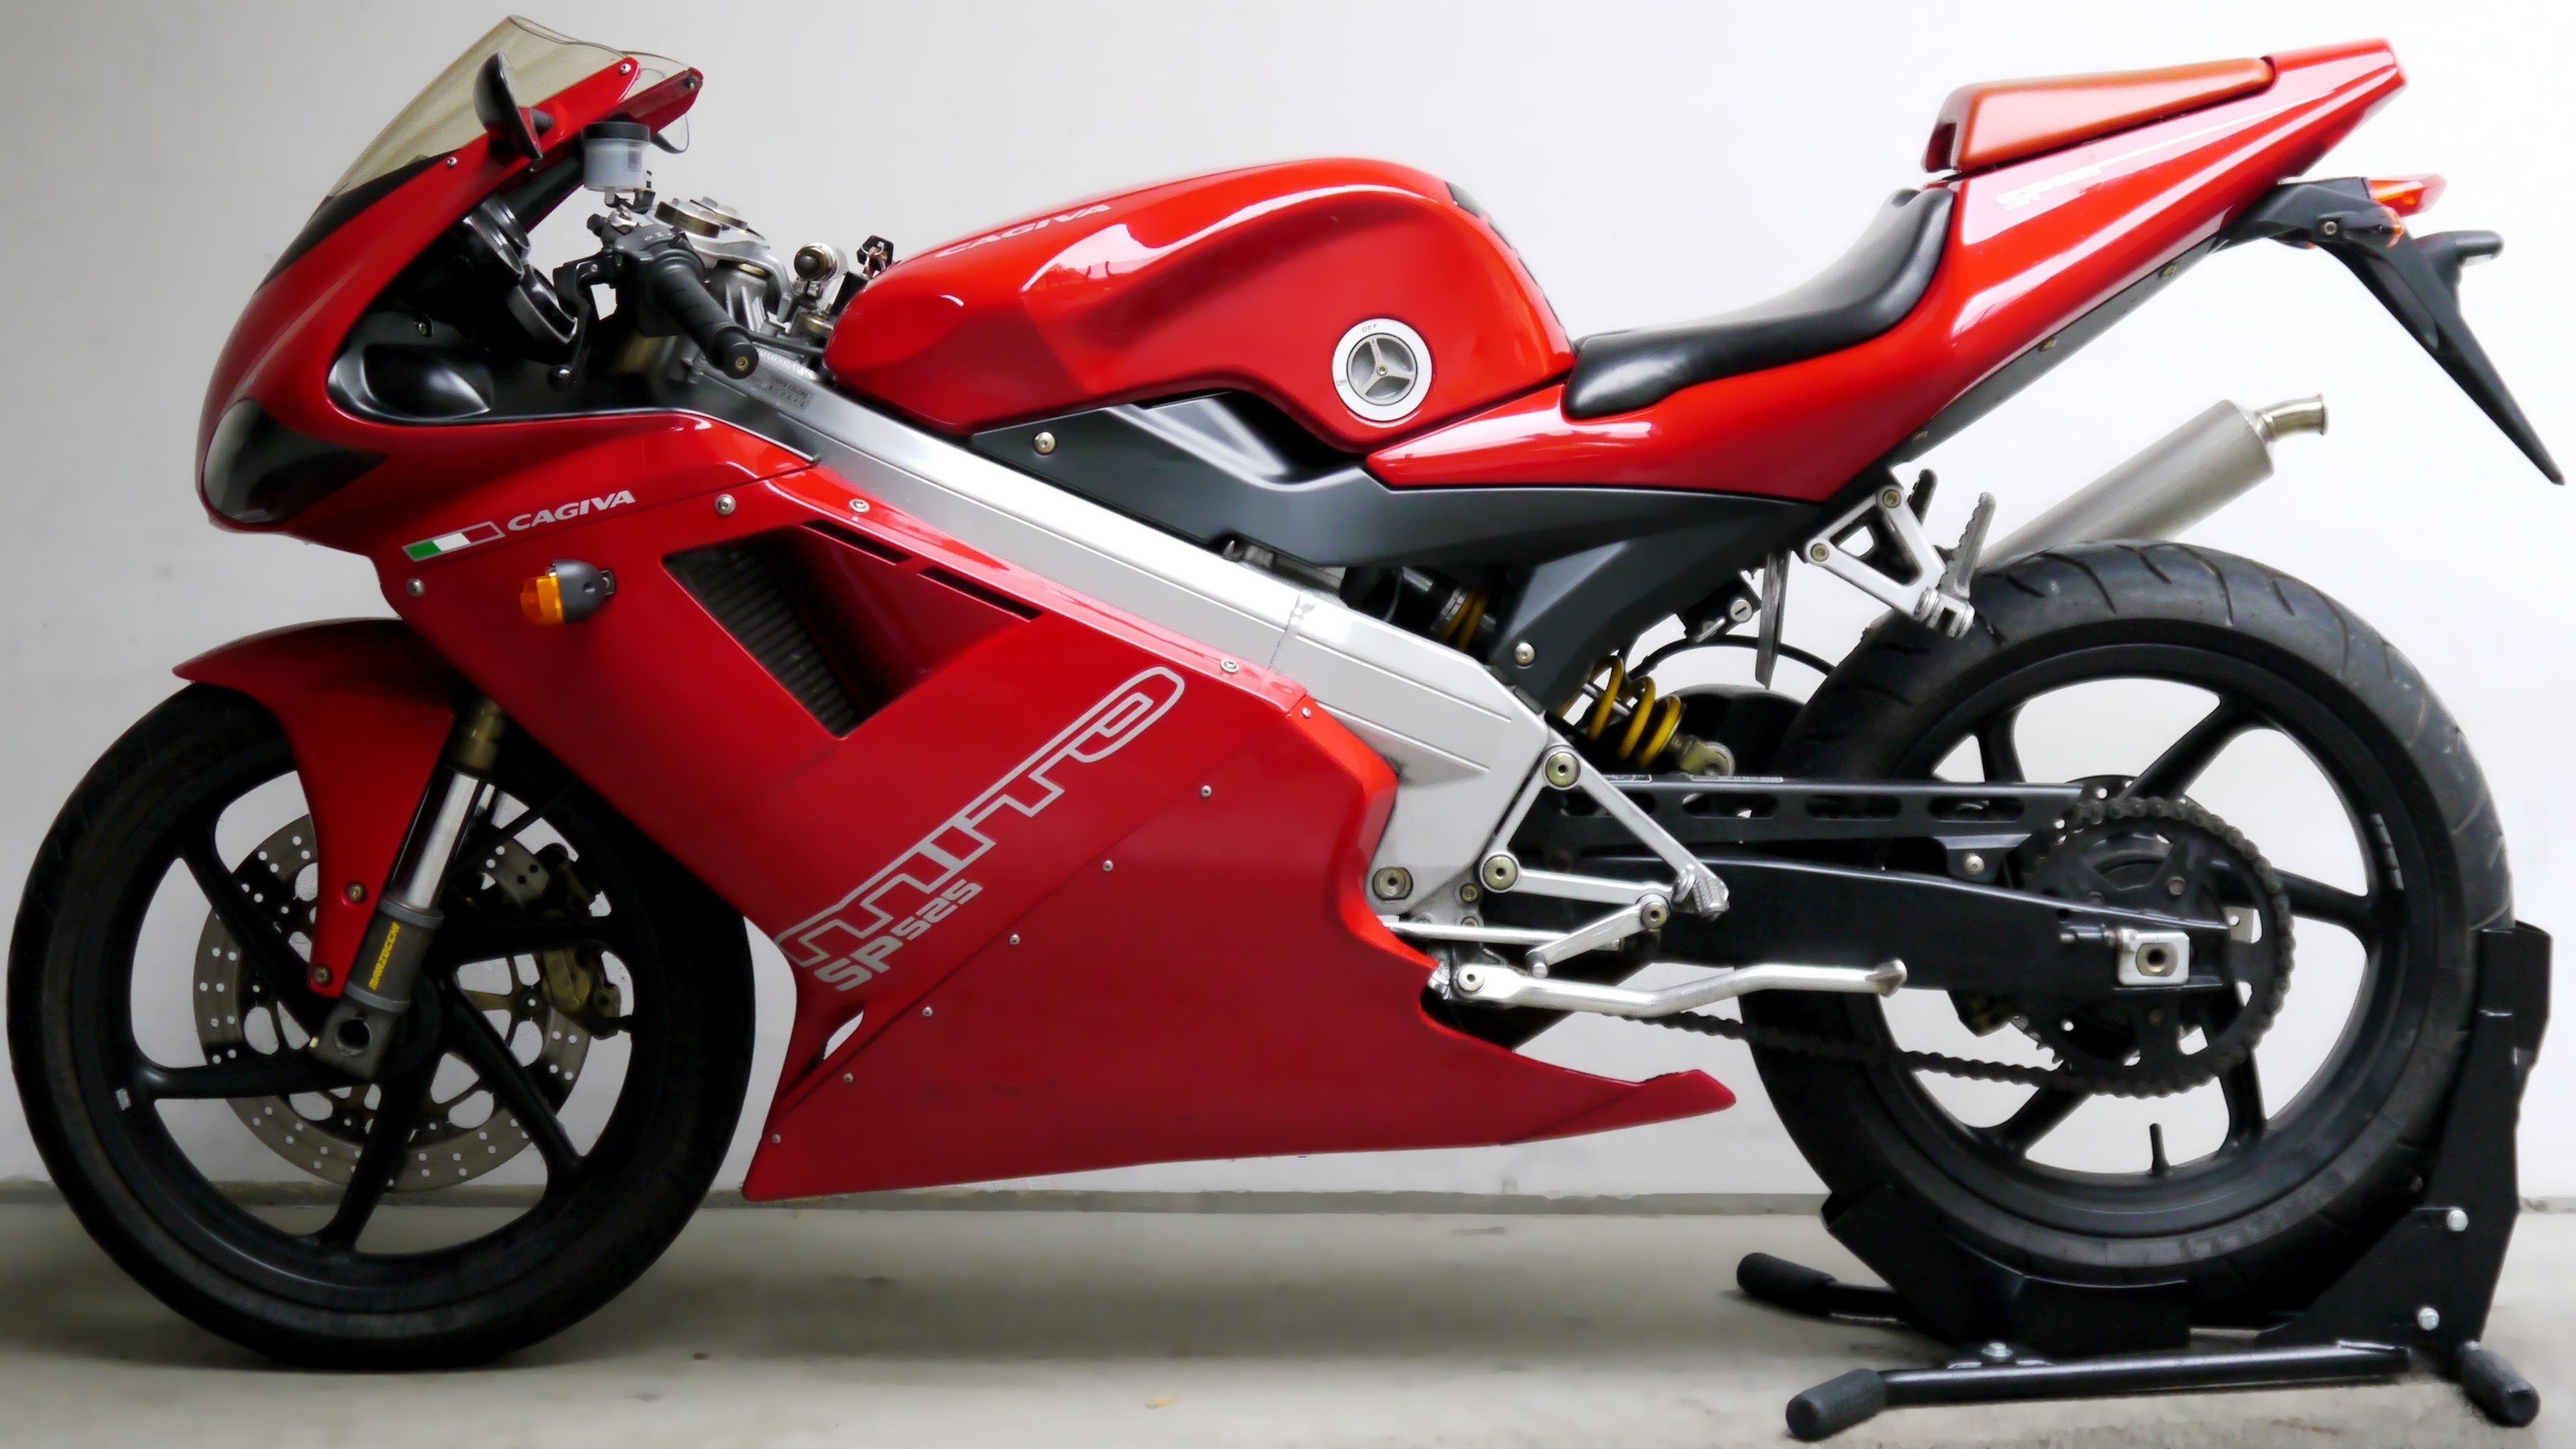 Cagiva images #93604